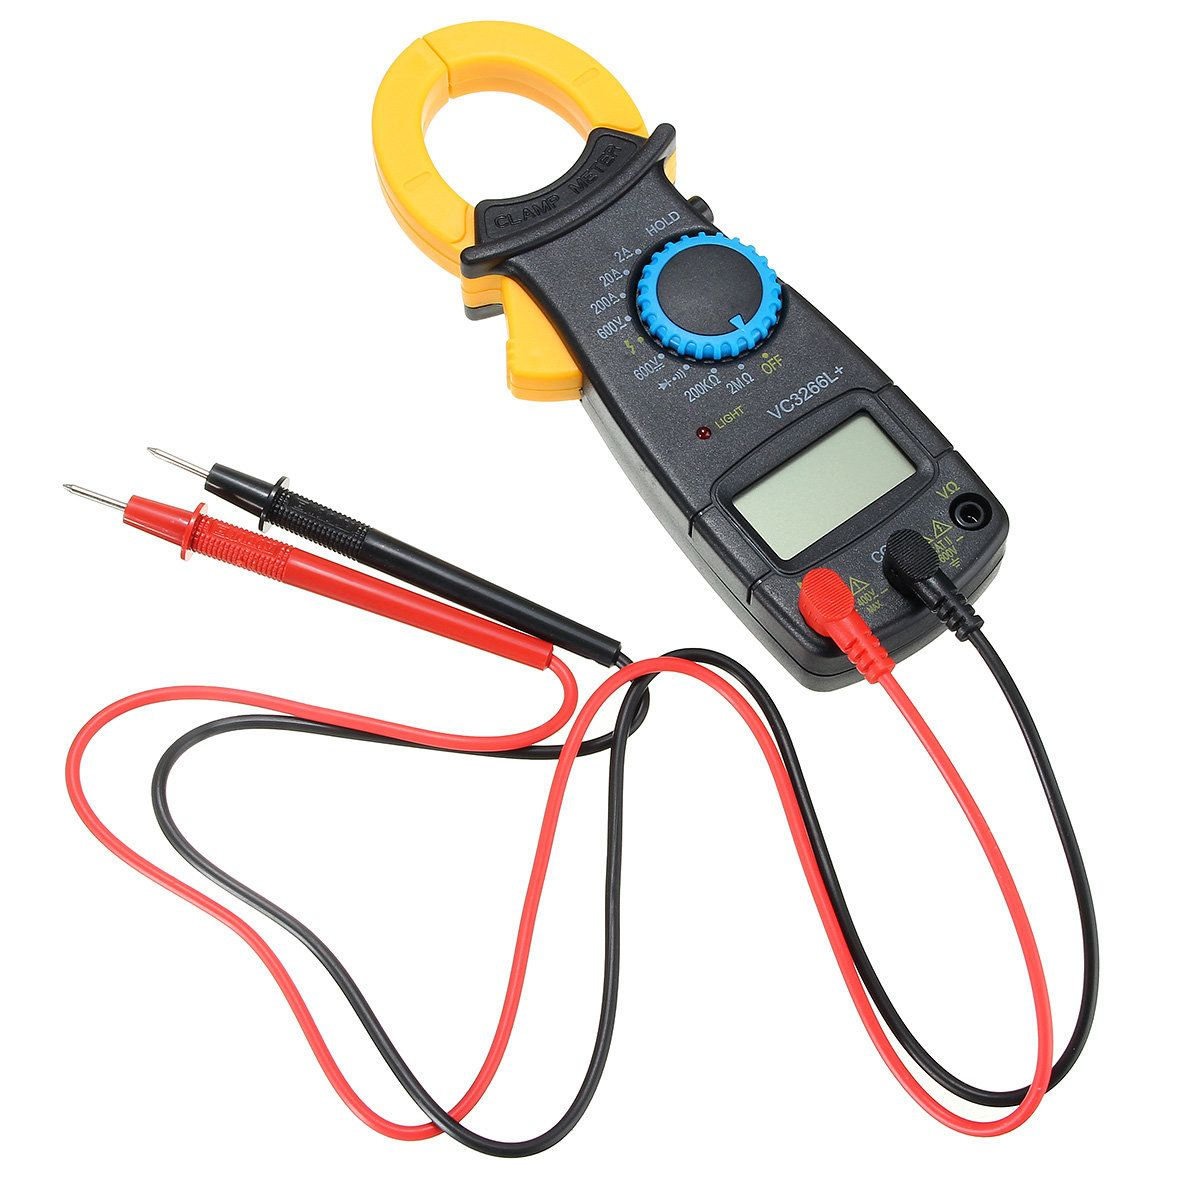 Us850 Vc3266l Digital Clamp Meter Multimeter Electronic Ac Dc Lcd Voltmeter Ammeter Ohm Circuit Checker Volt Voltage Amp